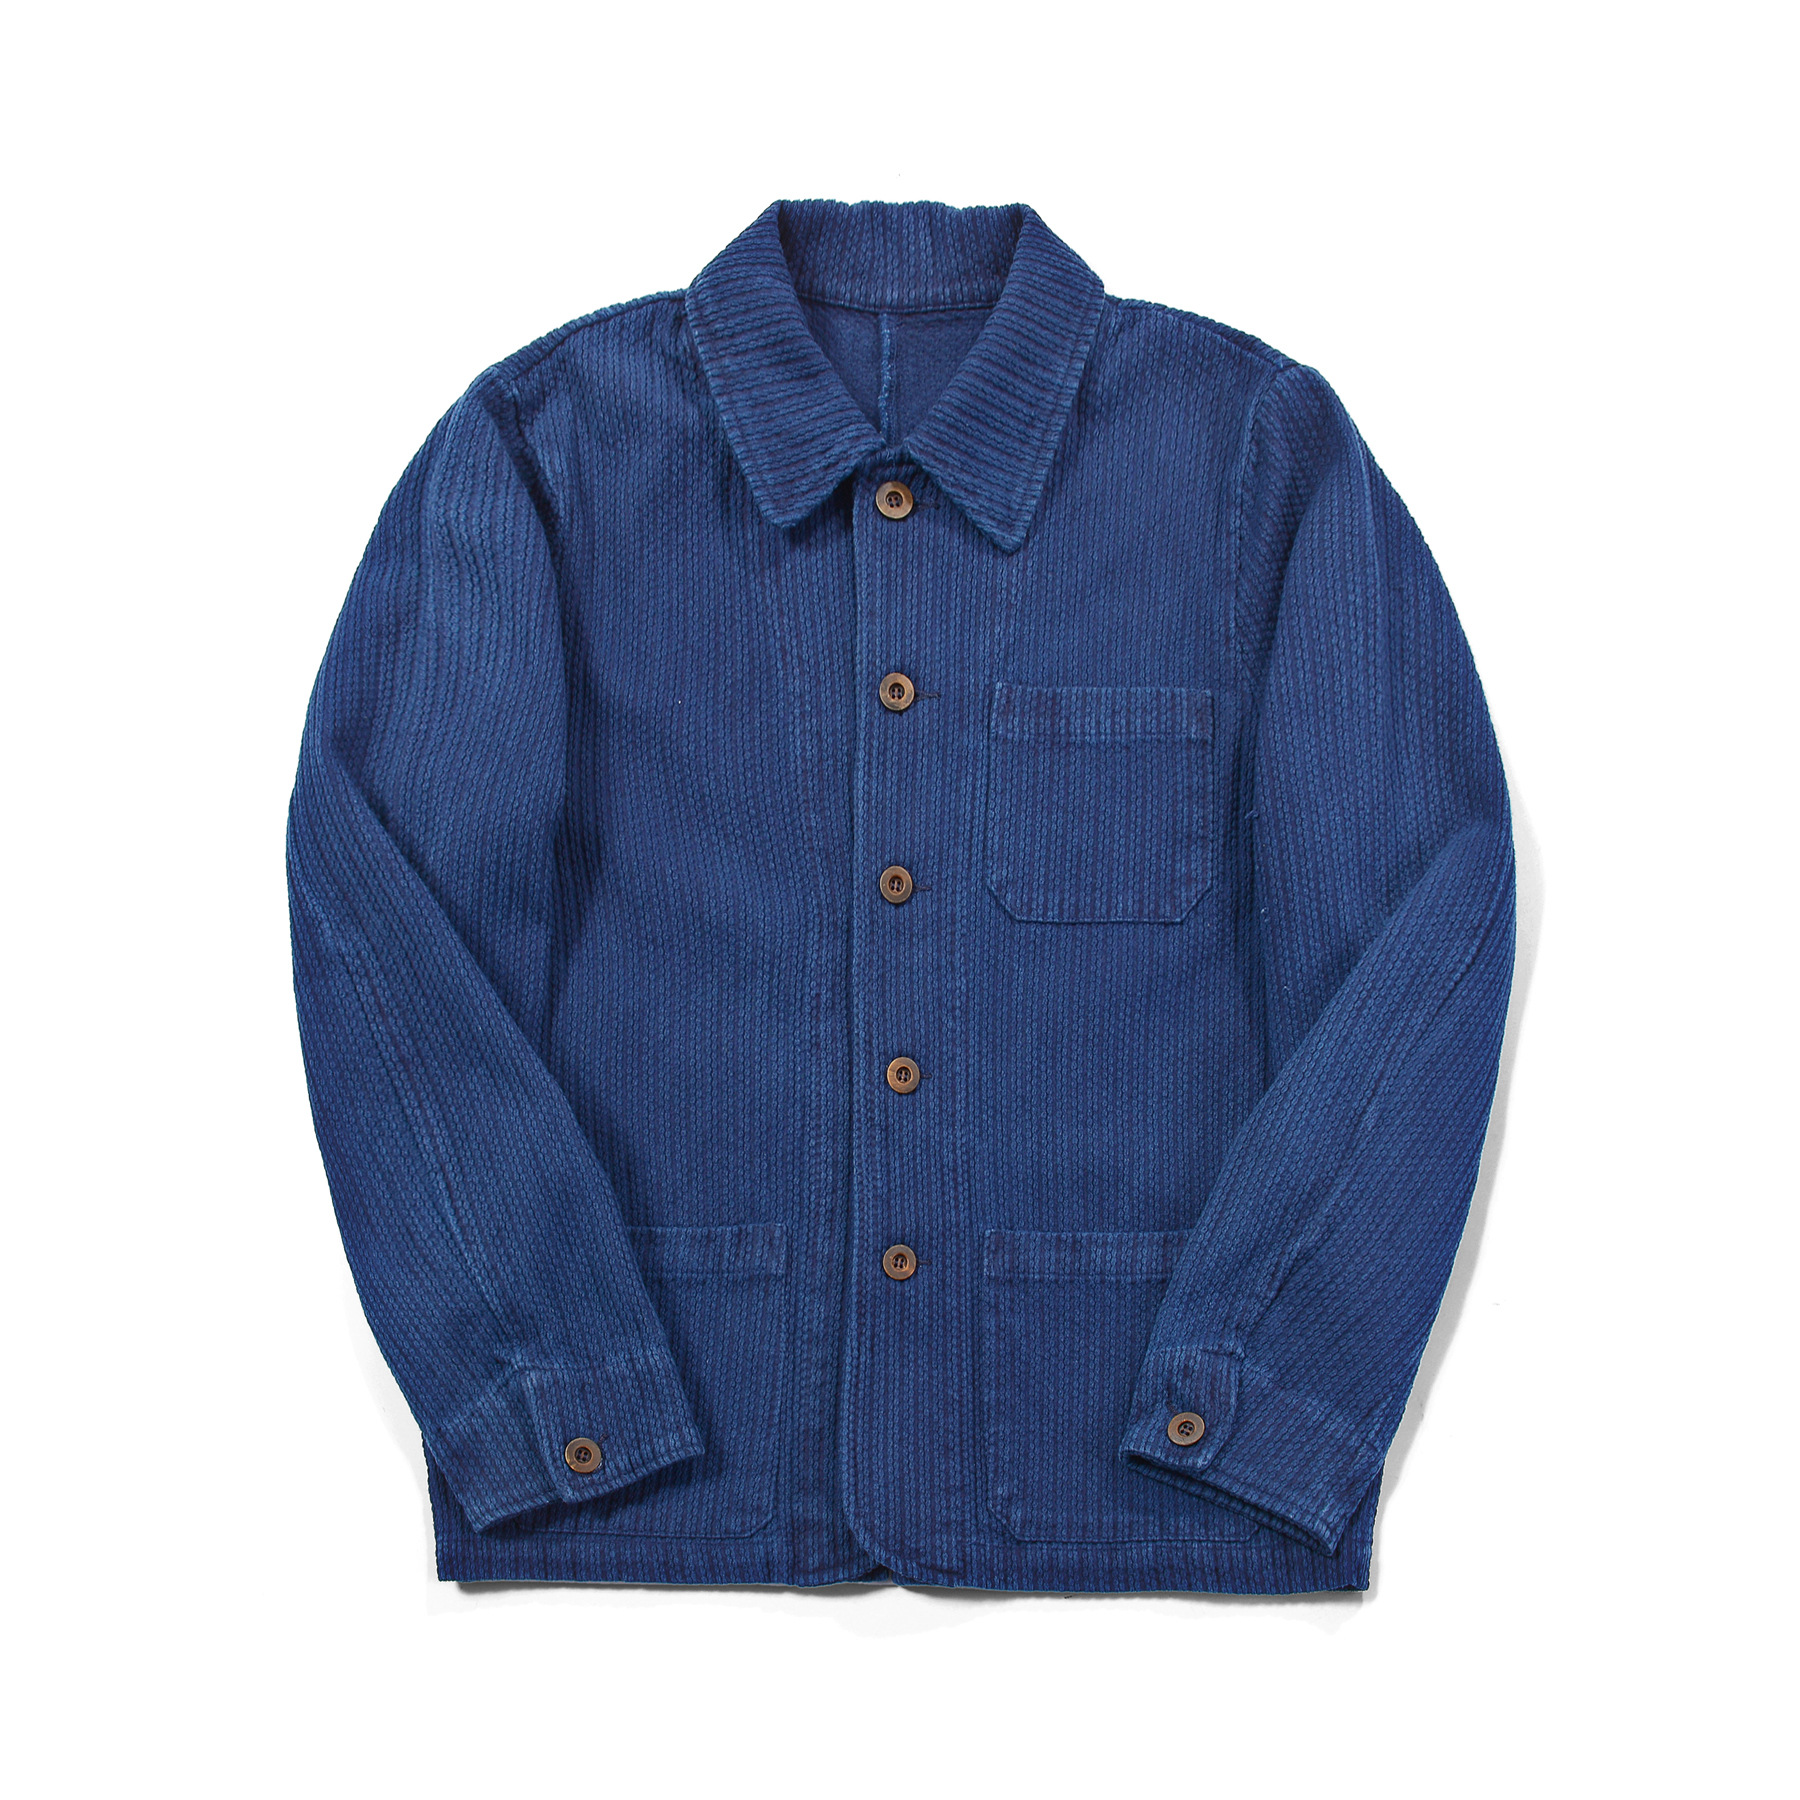 Badbowl Huang's weaving indigo hand-made plant blue dye coat French work jacket thorn long sleeve j